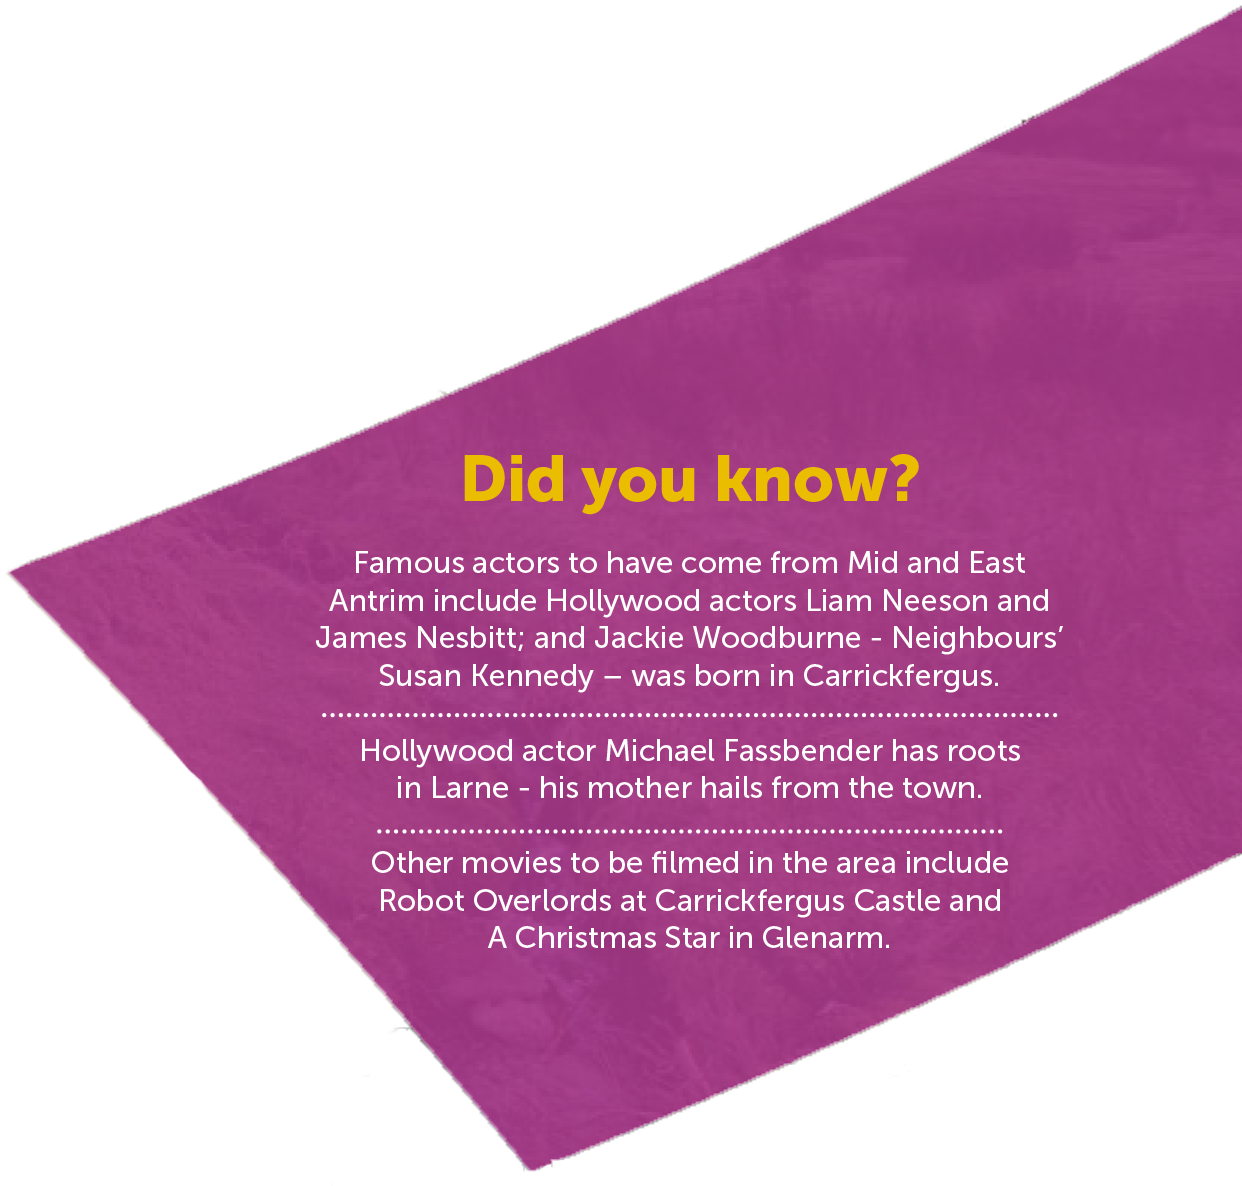 Image of containing a Did you know? Fact about Mid and East Antrim